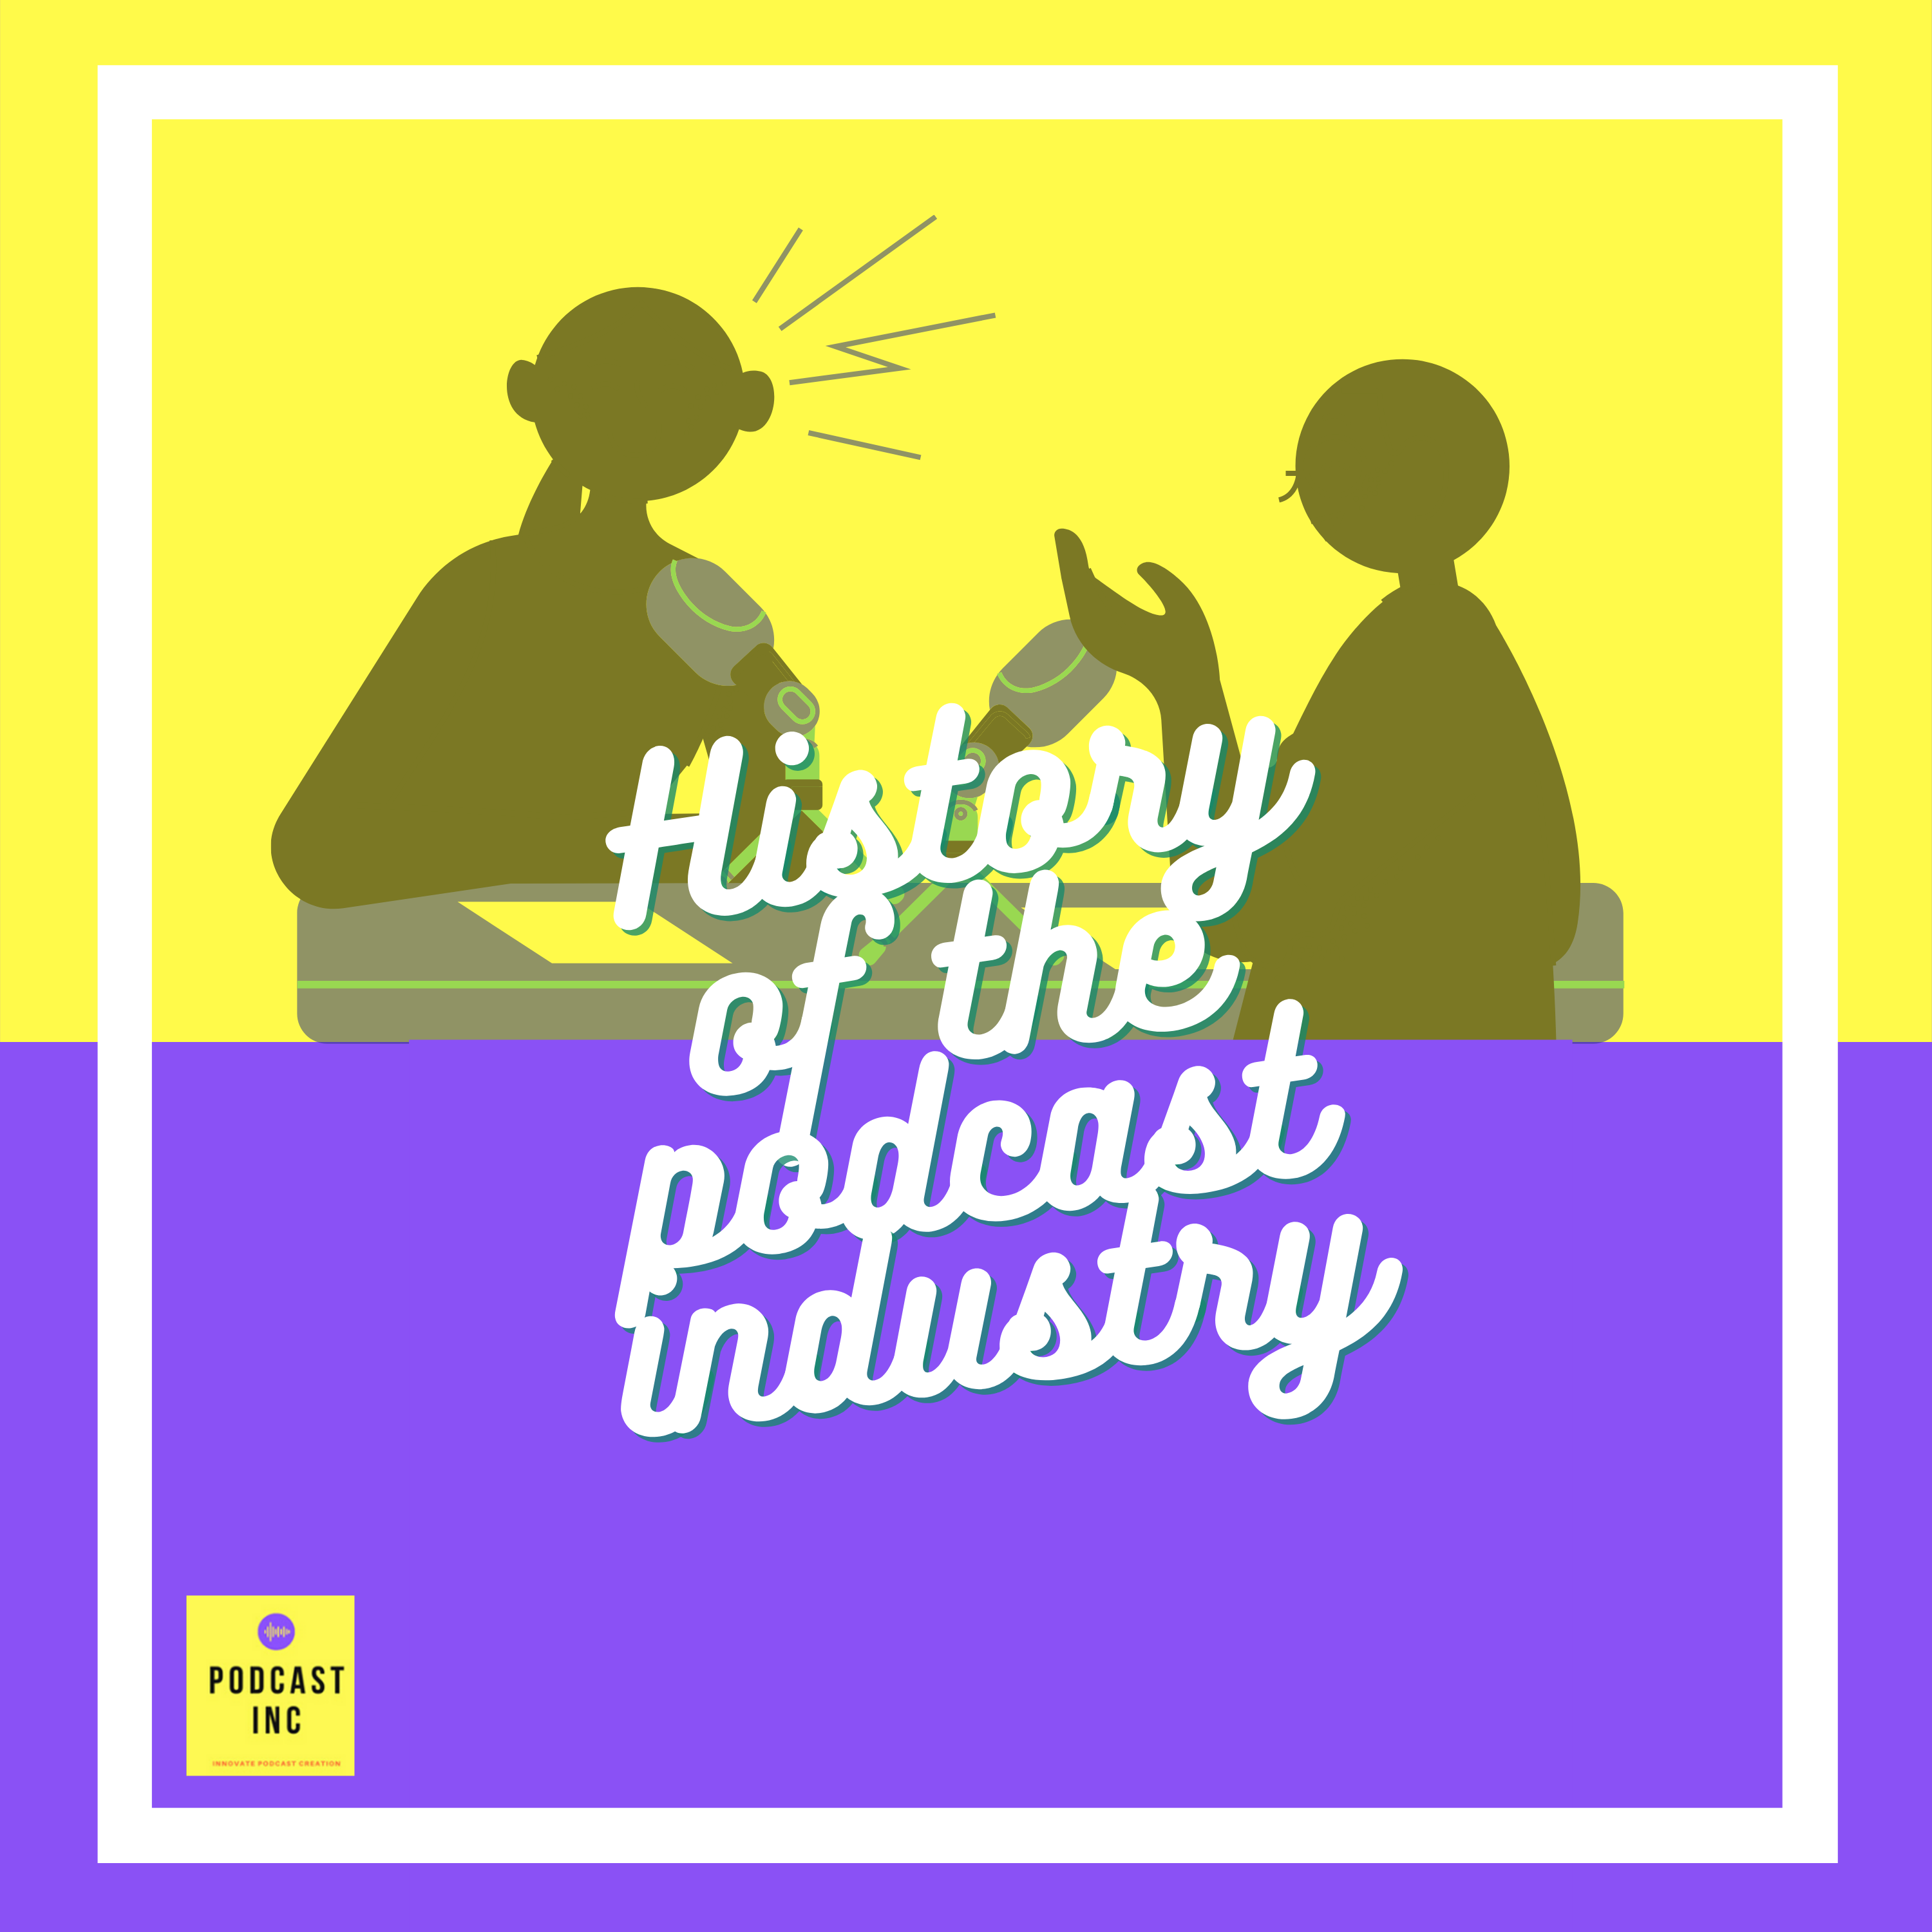 History of Podcast Industry